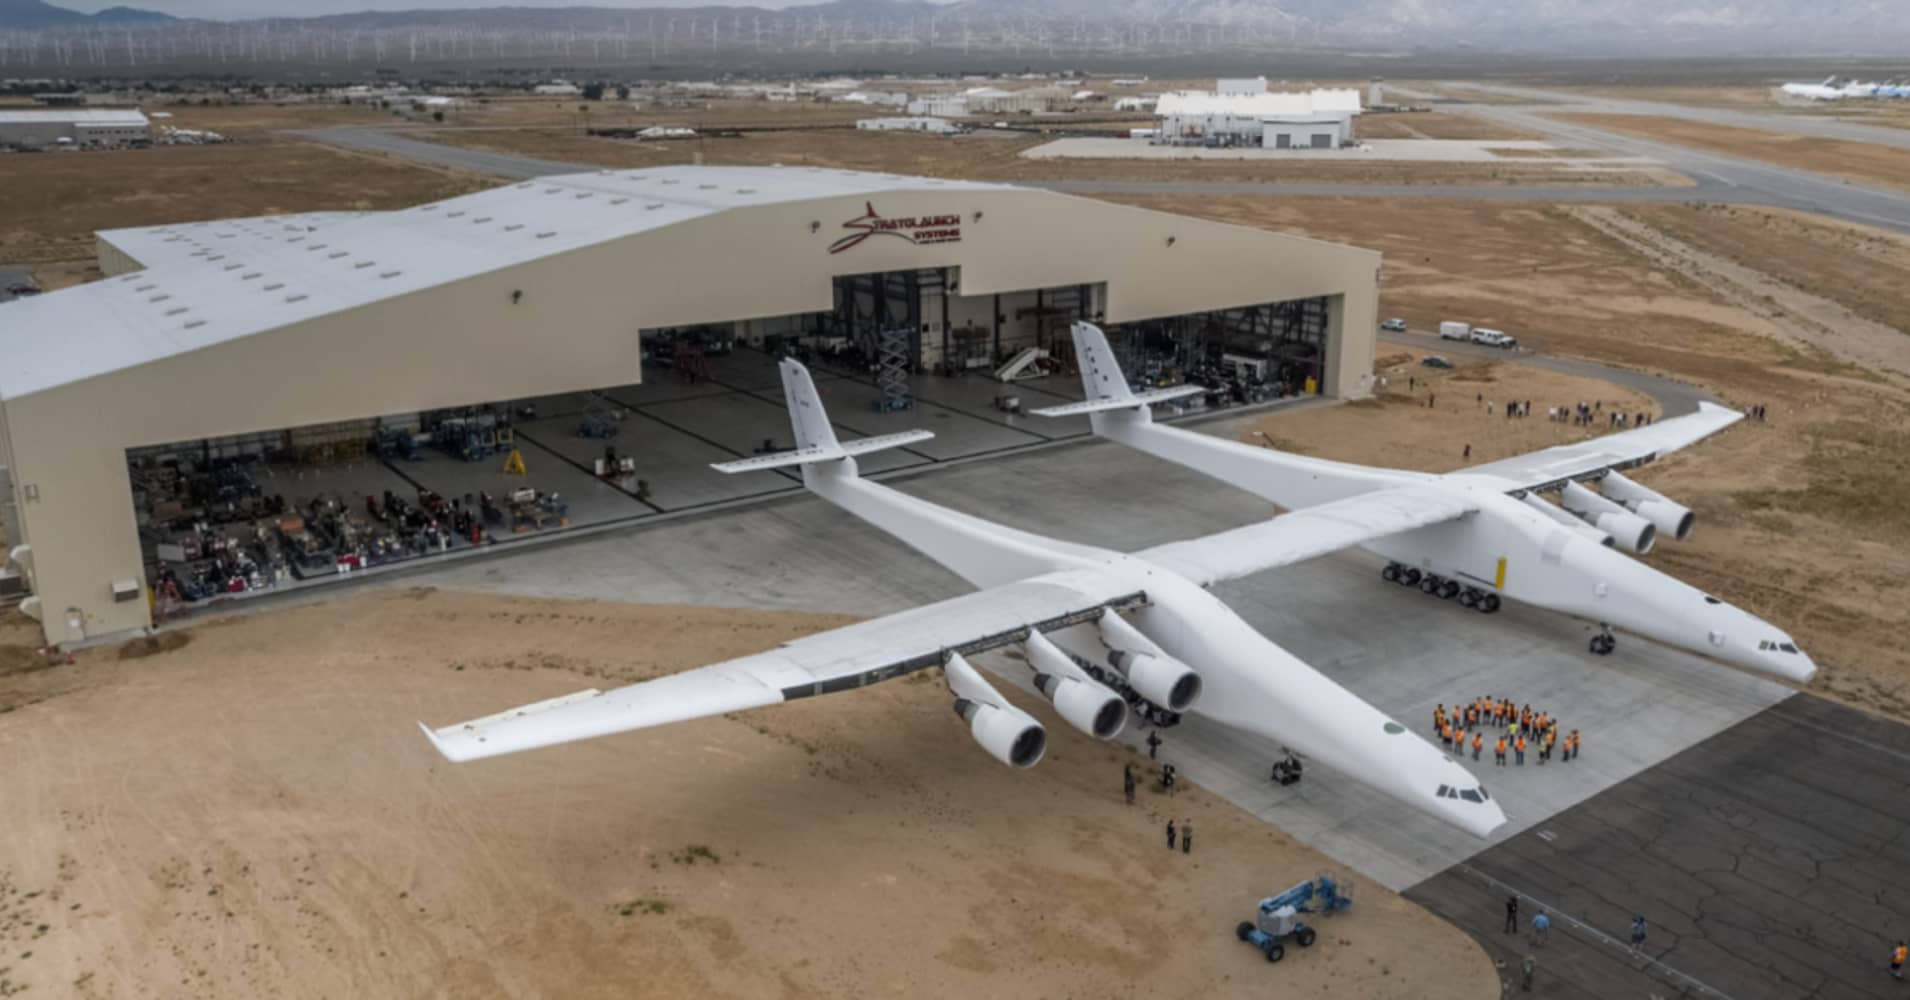 Stratolaunch, the world's largest airplane and built to launch rockets, takes first flight